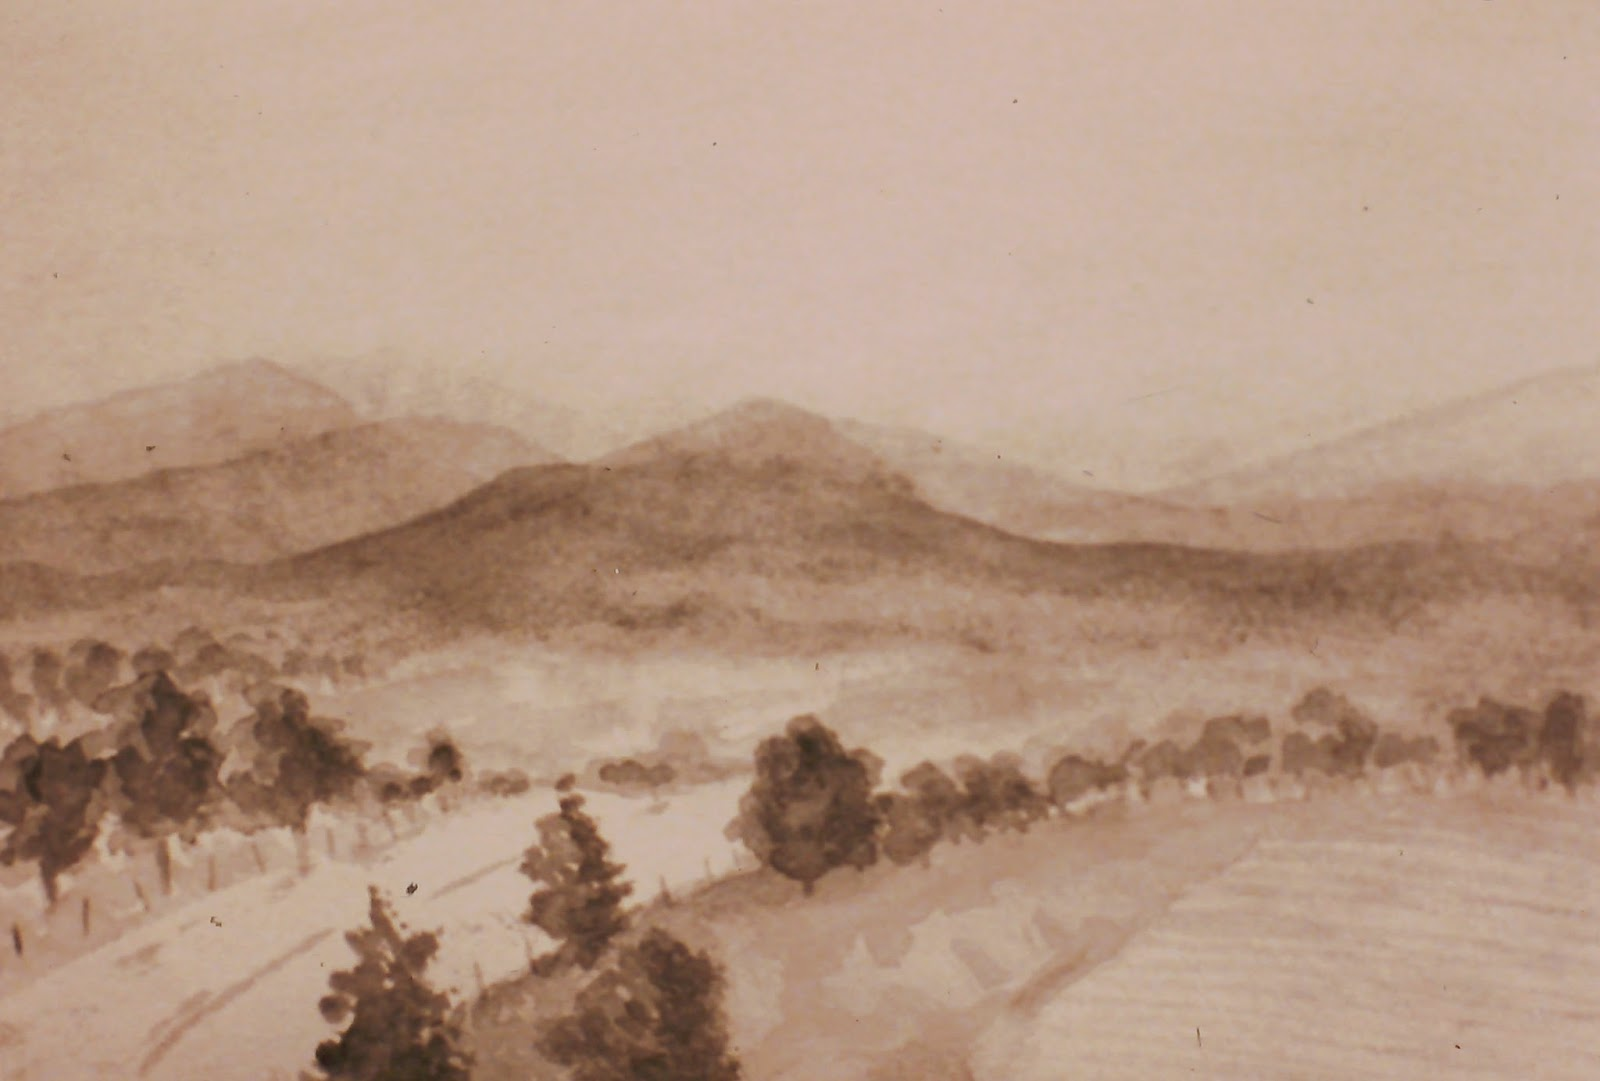 View of the Highlands, near Edzell, Angus, Scotland  10x14 inches. Watercolor on paper, c. 1992.  In a private collection in Fresno, California